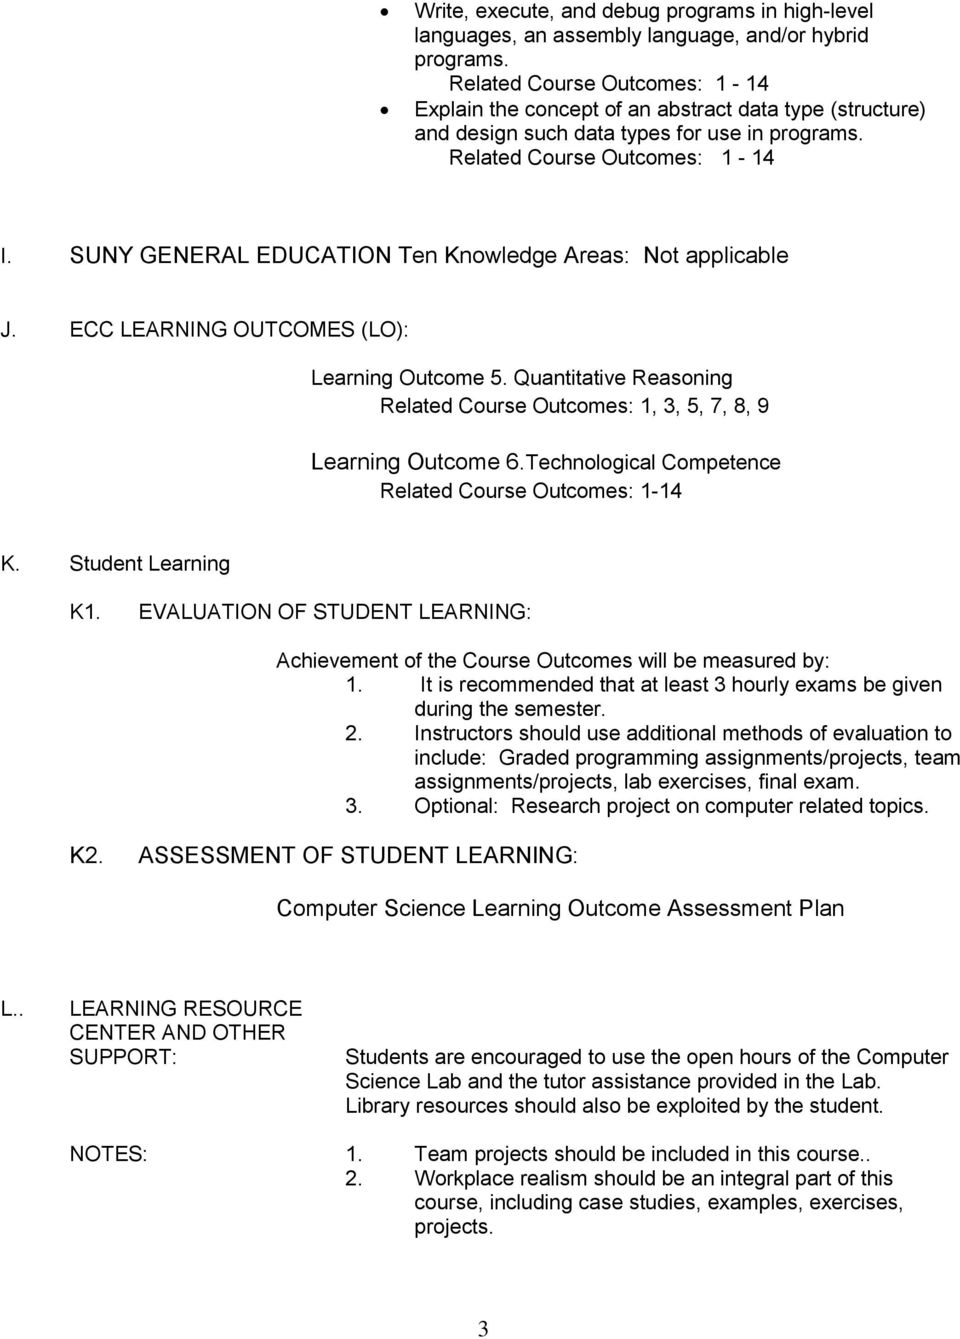 SUNY GENERAL EDUCATION Ten Knowledge Areas: Not applicable J. ECC LEARNING OUTCOMES (LO): Learning Outcome 5. Quantitative Reasoning Related Course Outcomes: 1, 3, 5, 7, 8, 9 Learning Outcome 6.